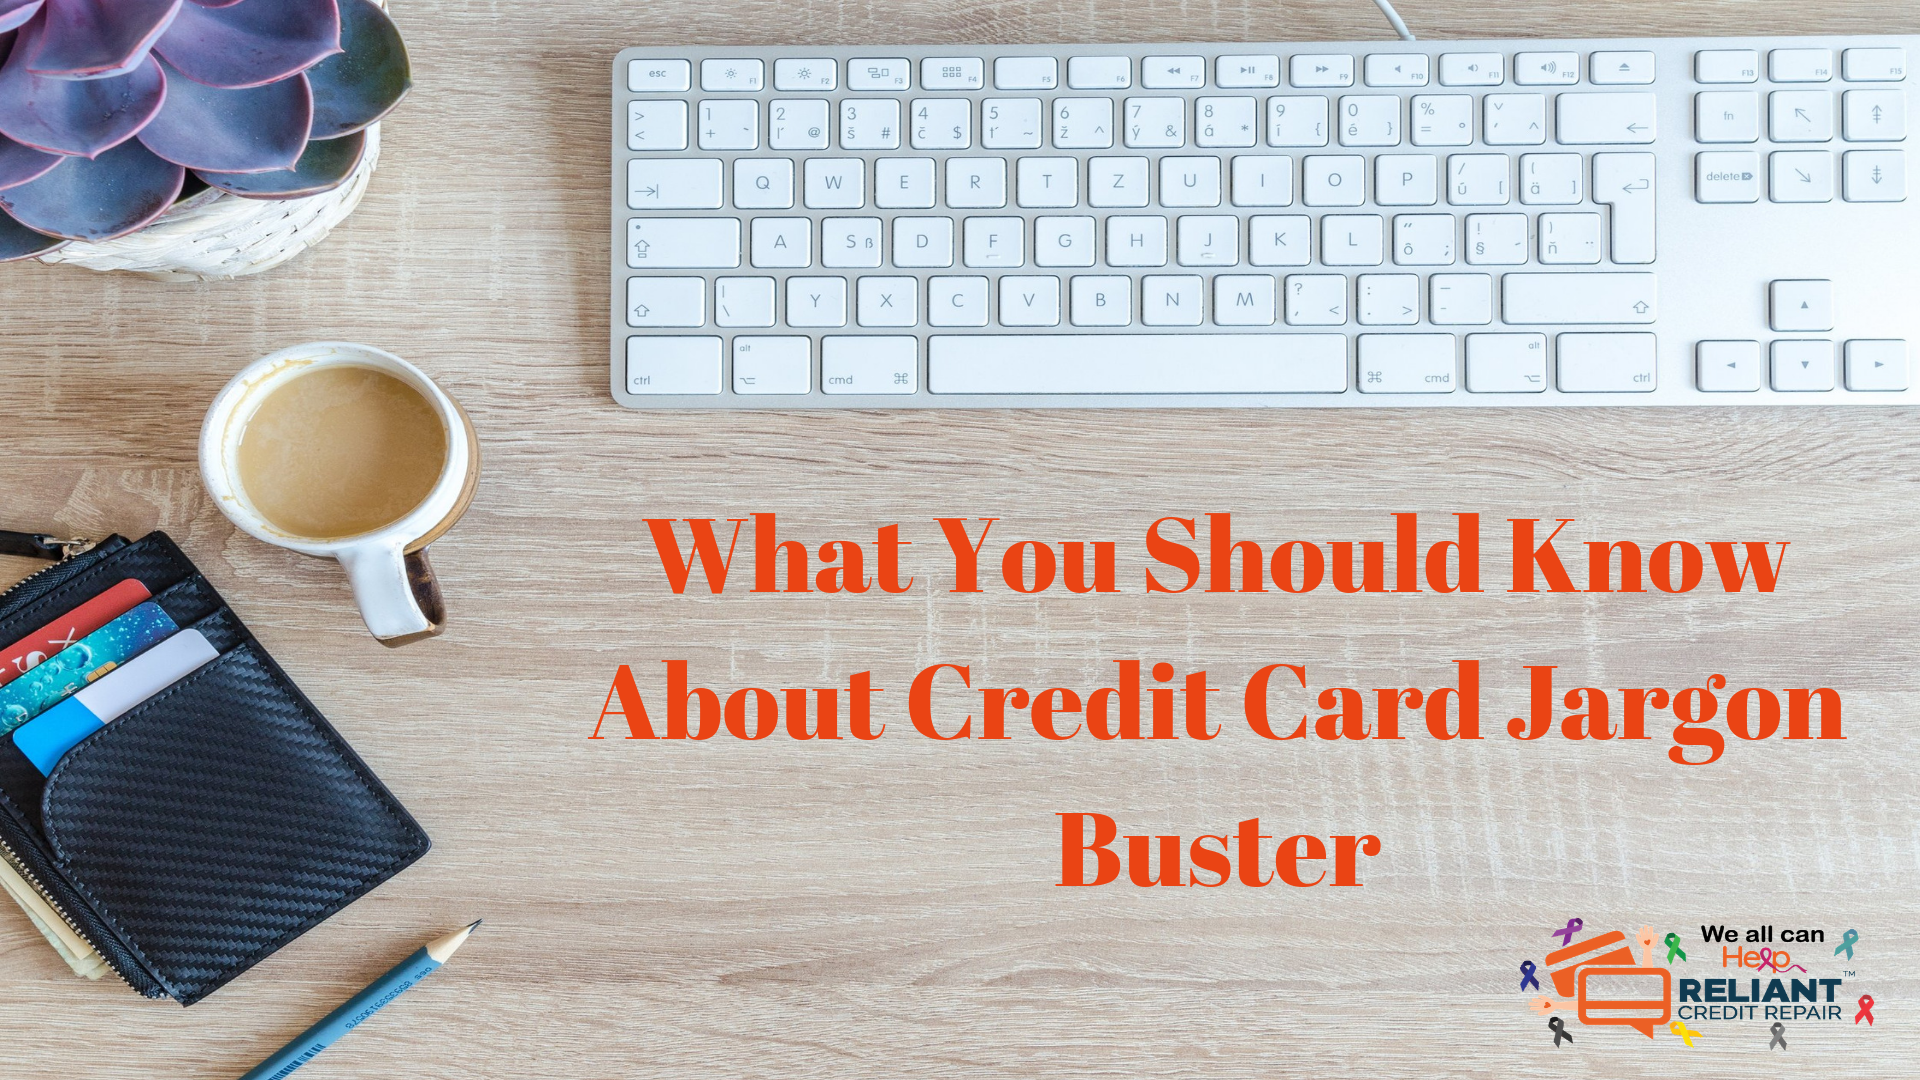 Credit Card Jargon Buster